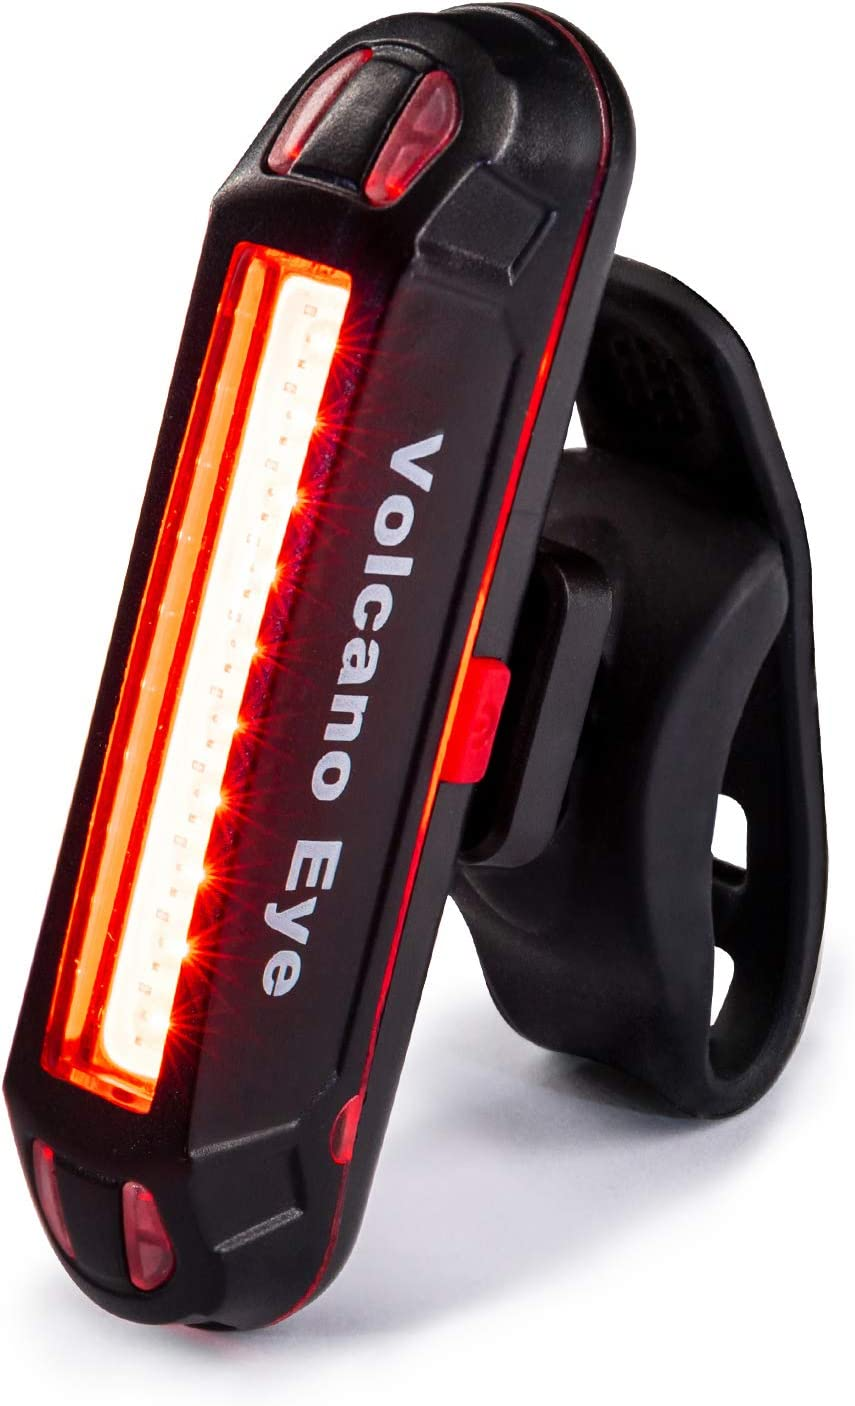 6 Modes Red//White Rear Bicycle Bike Tail Light USB Rechargeable Road MTB Helmet